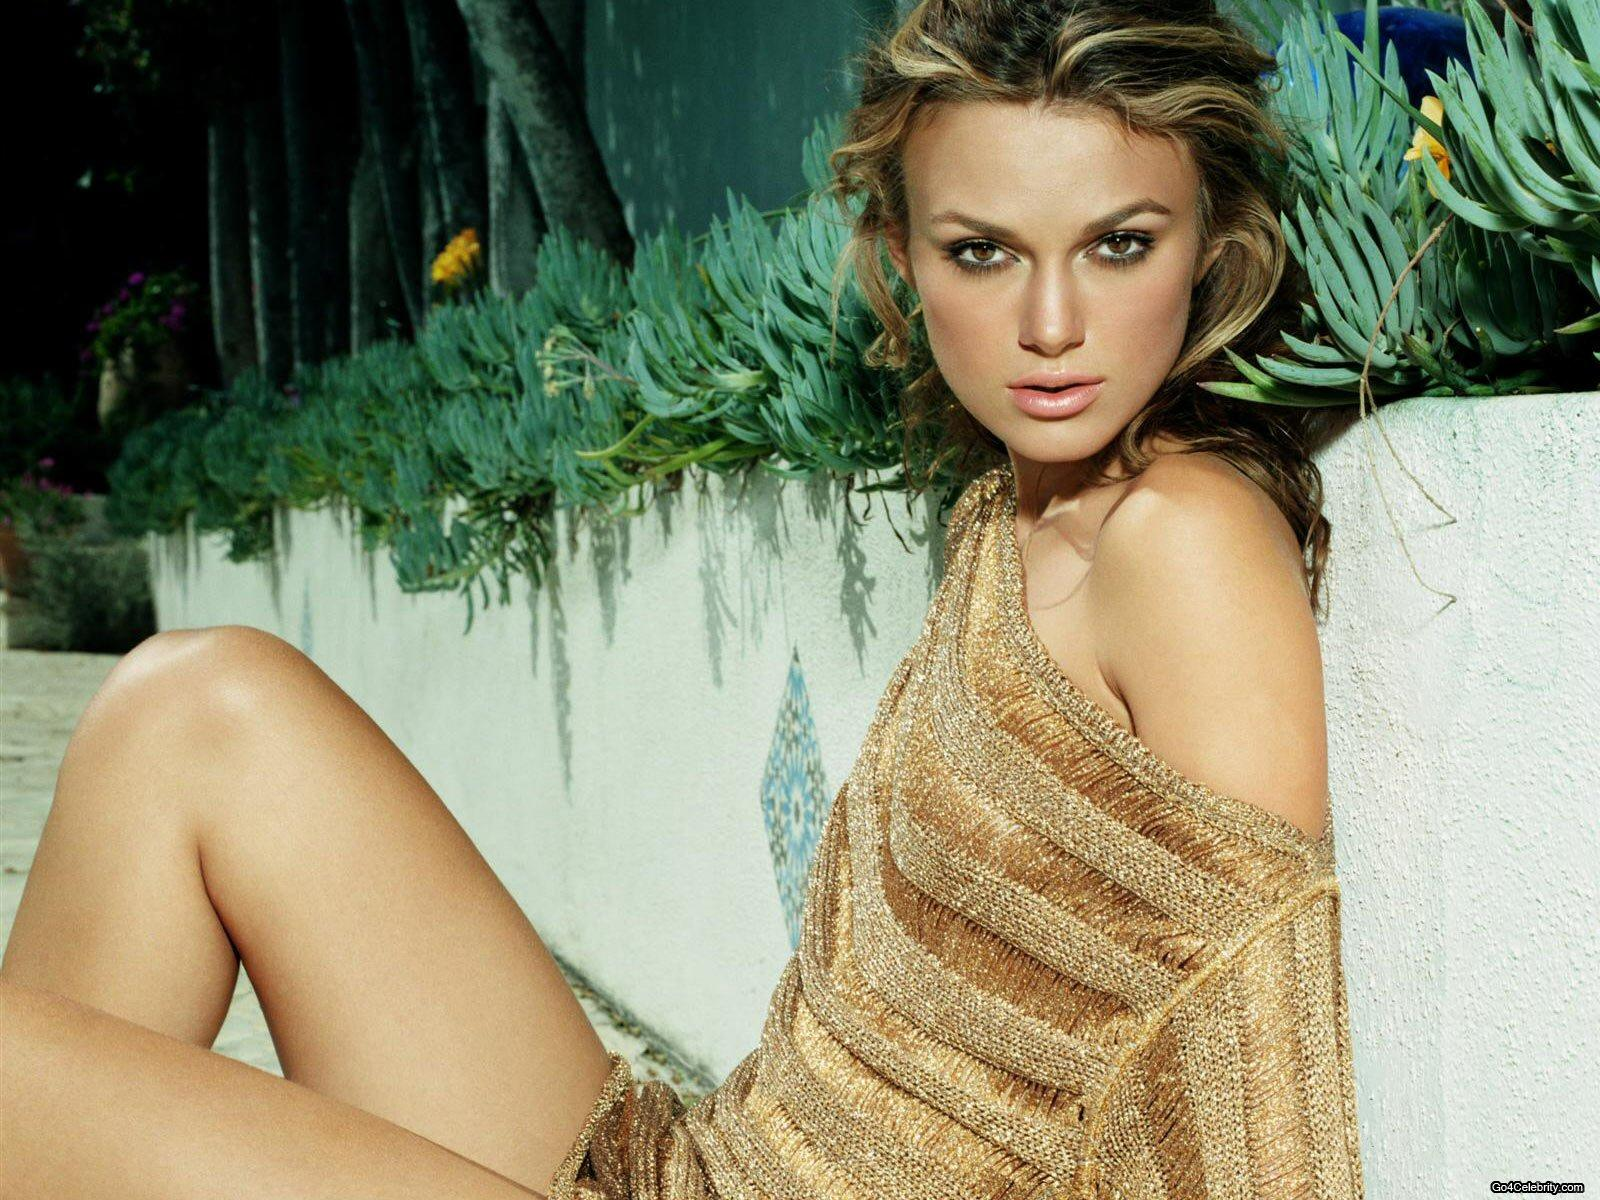 Keira Knightley Hot Wallpapers 2012 | It's All About Wallpapers